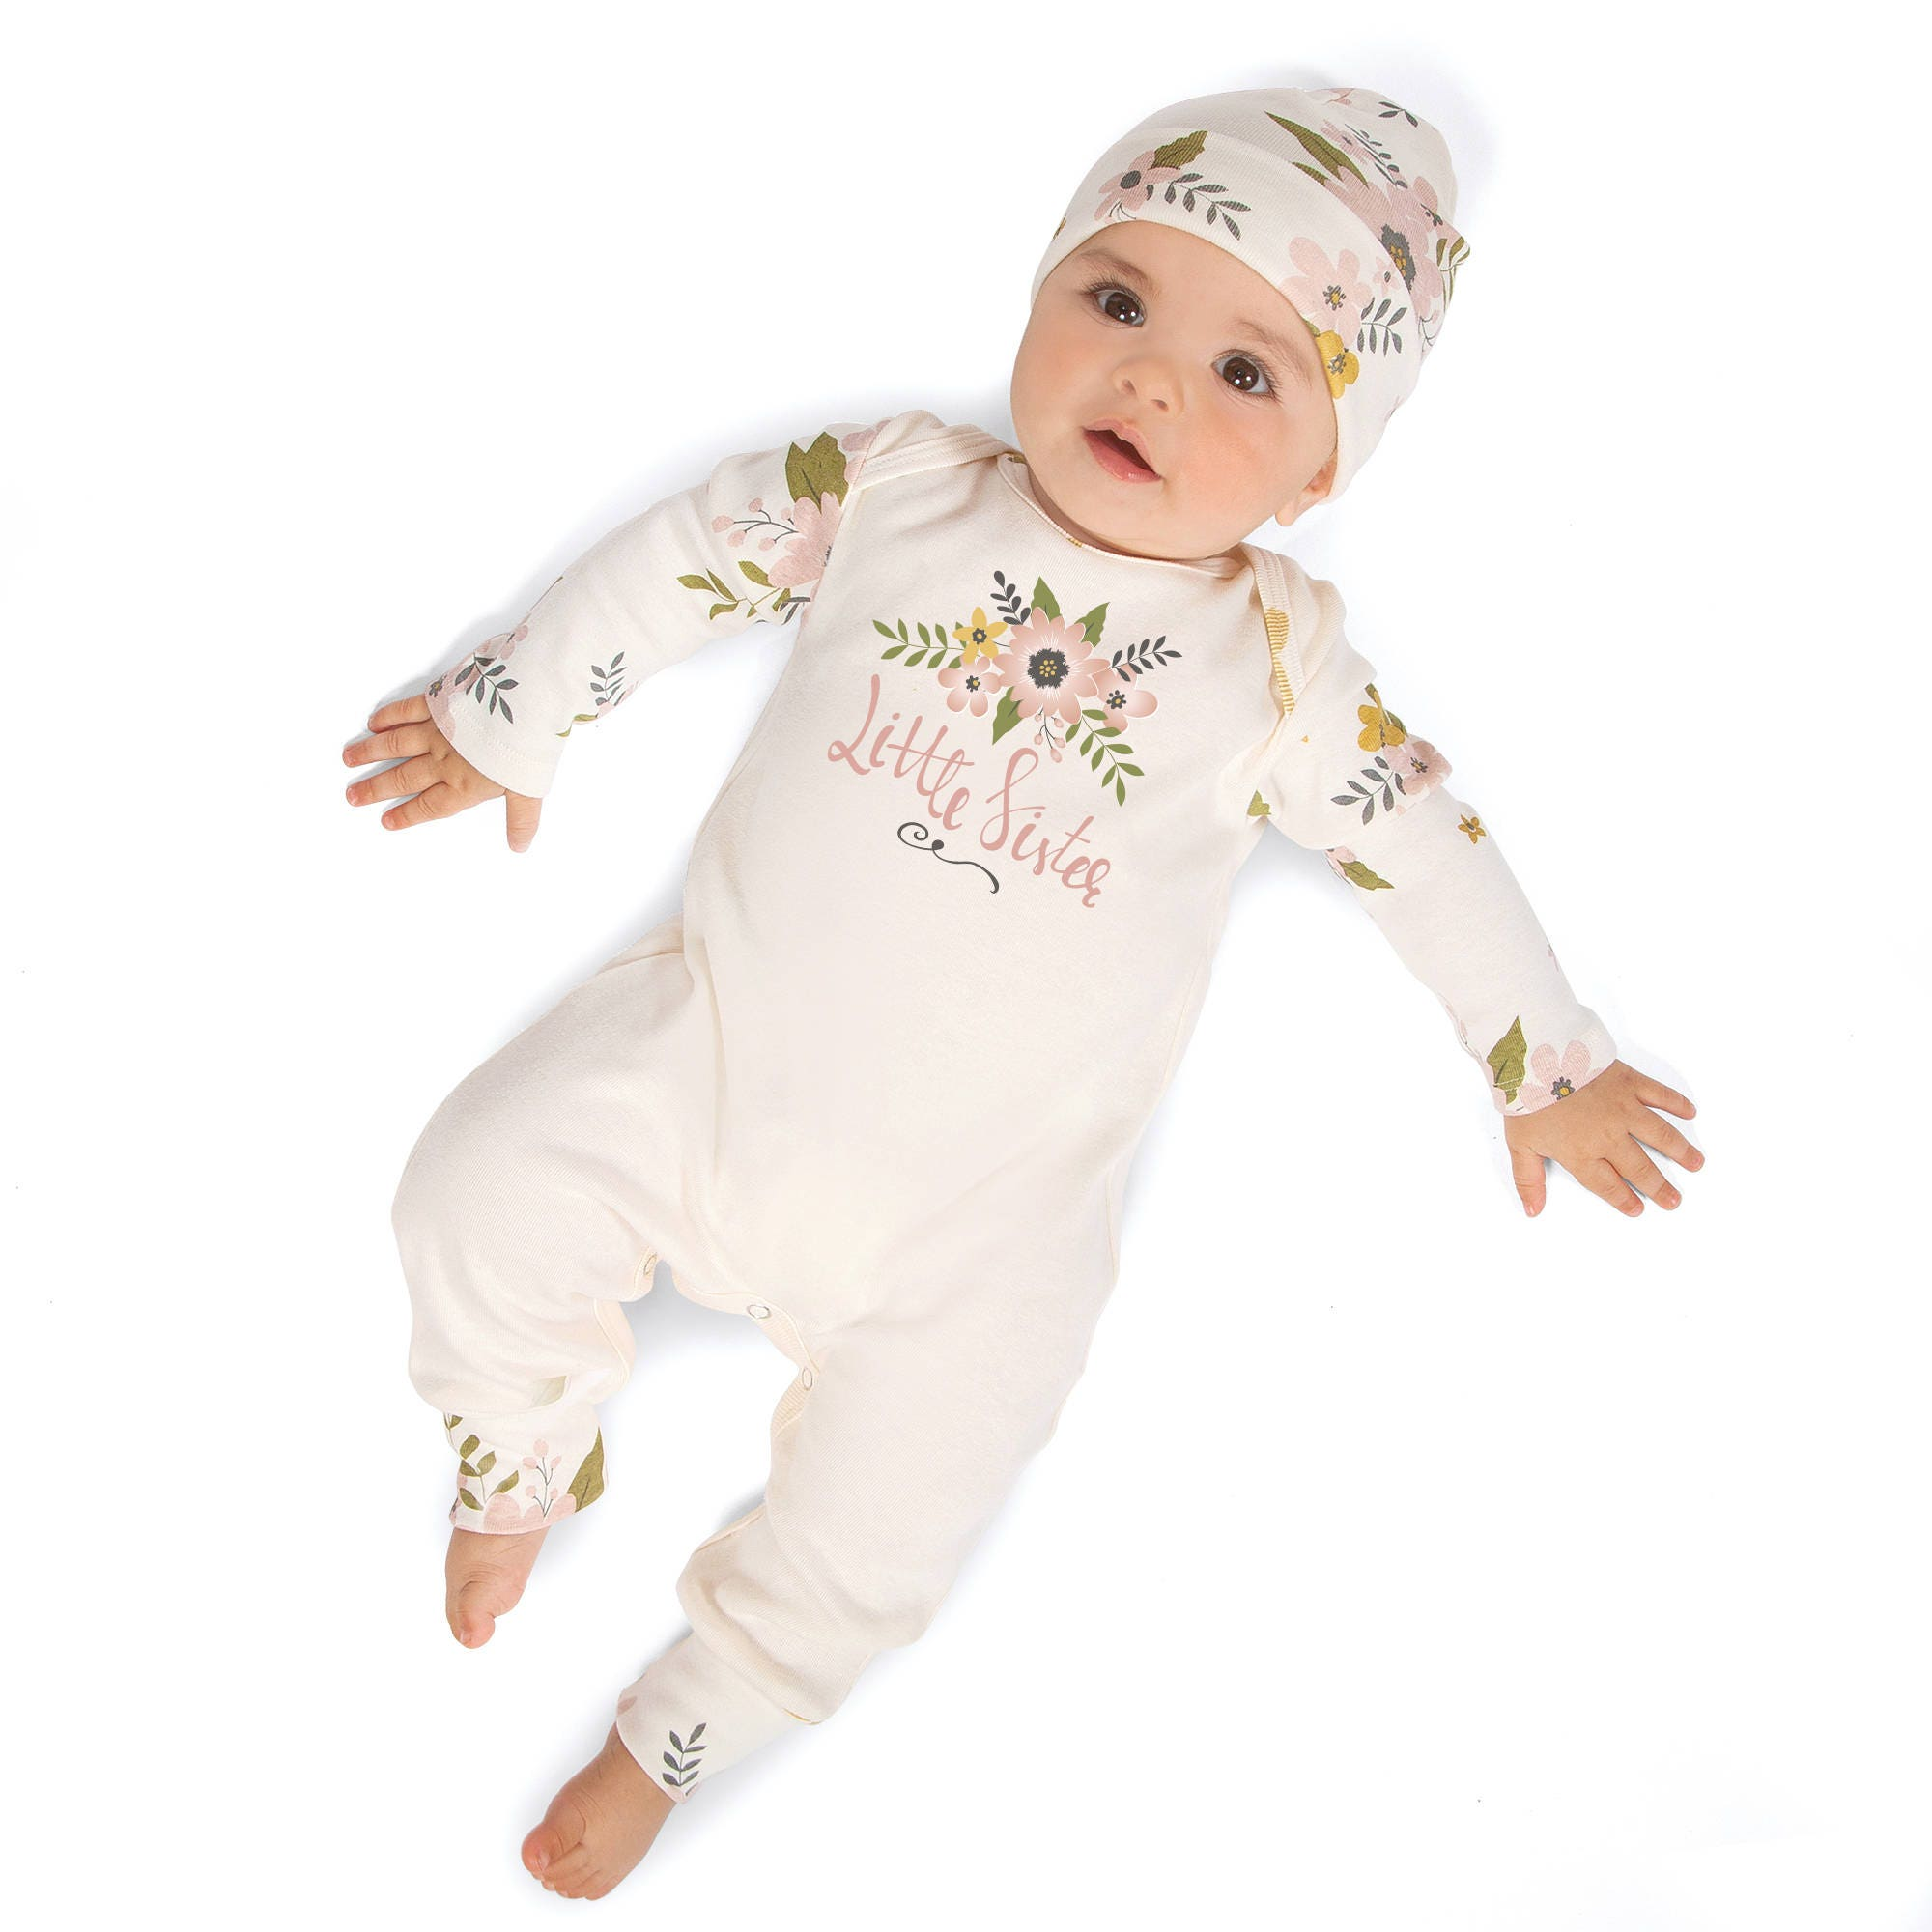 Little Sister Newborn Girl Coming Home Outfit, Infant Girl Outfit ...